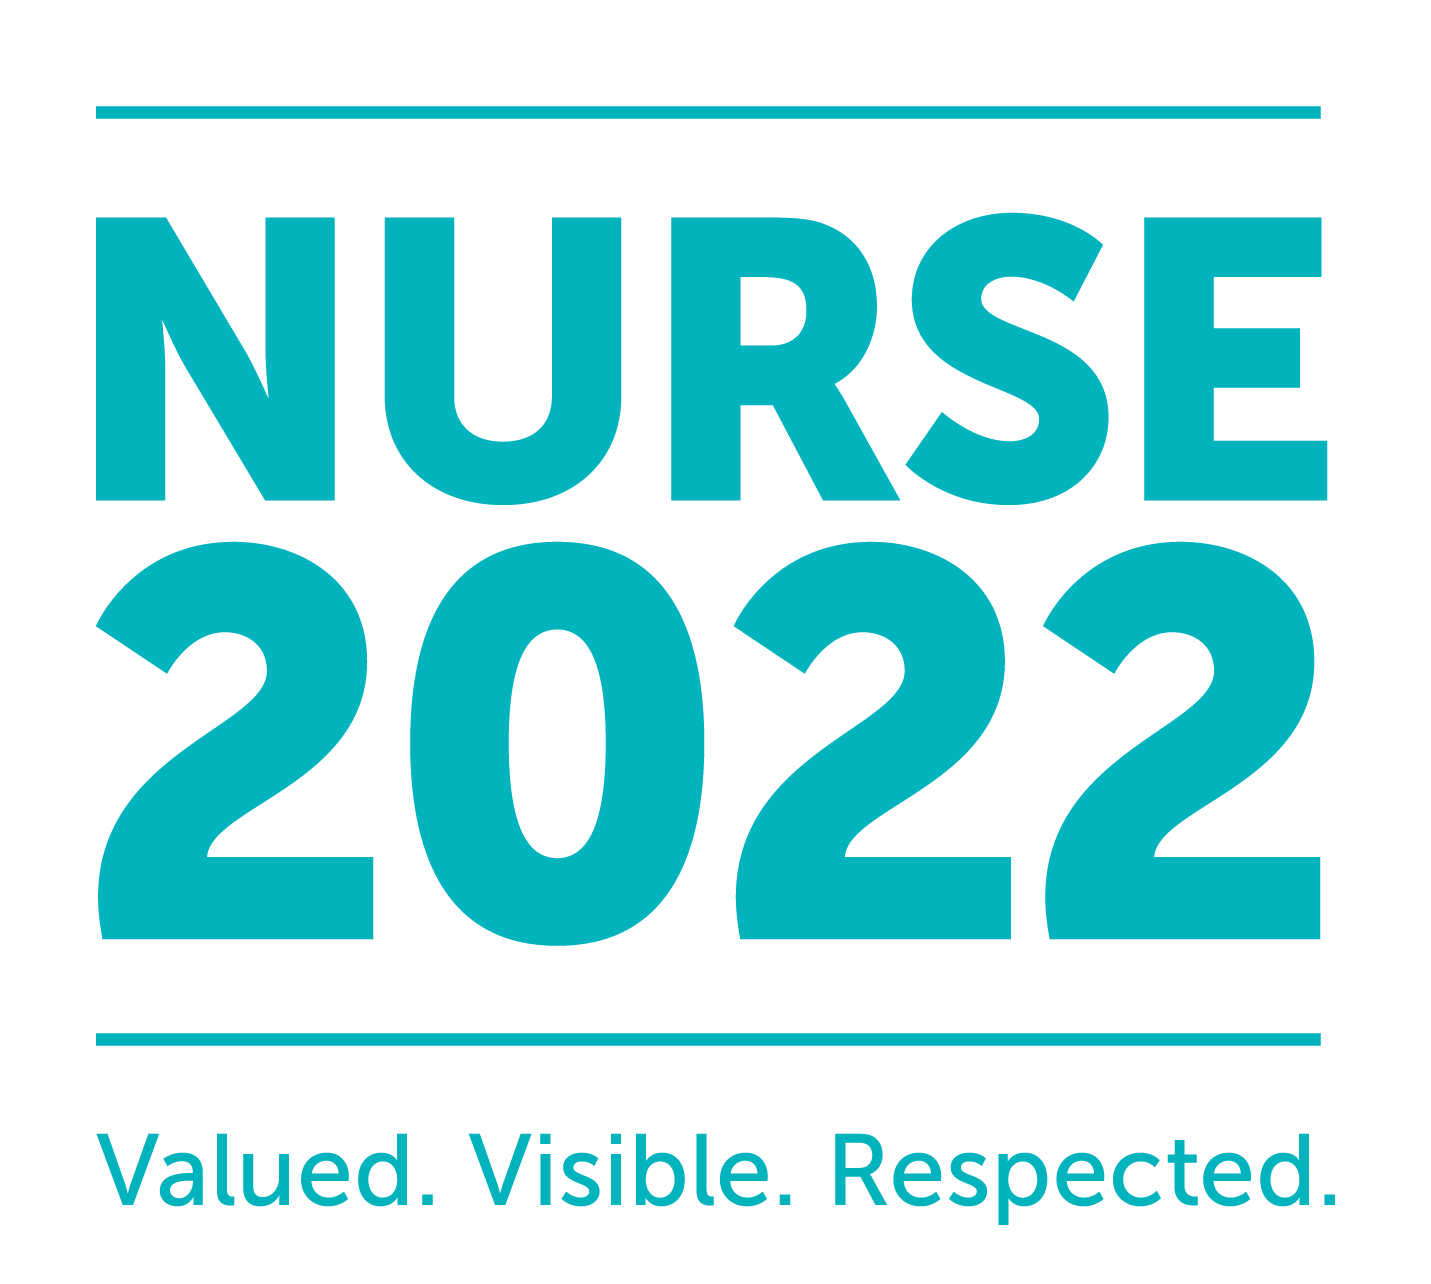 Nurse 2022 - Valued. Visible. Respected.